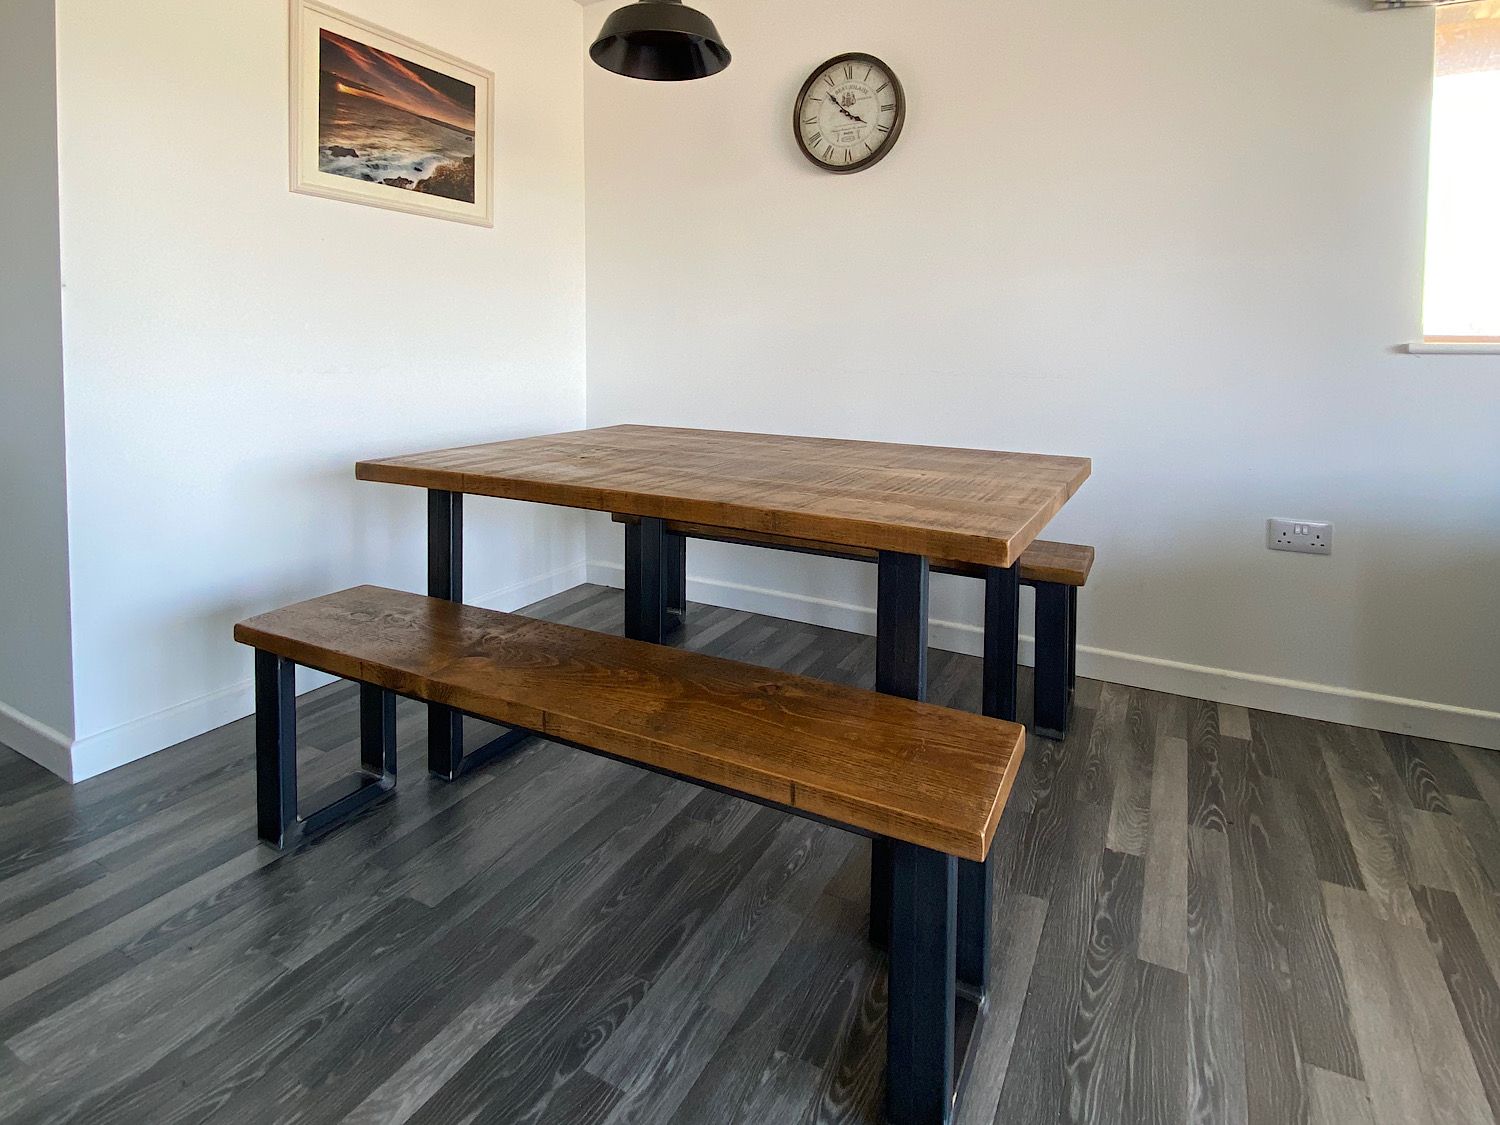 Thick Industrial Square Leg Dining Table